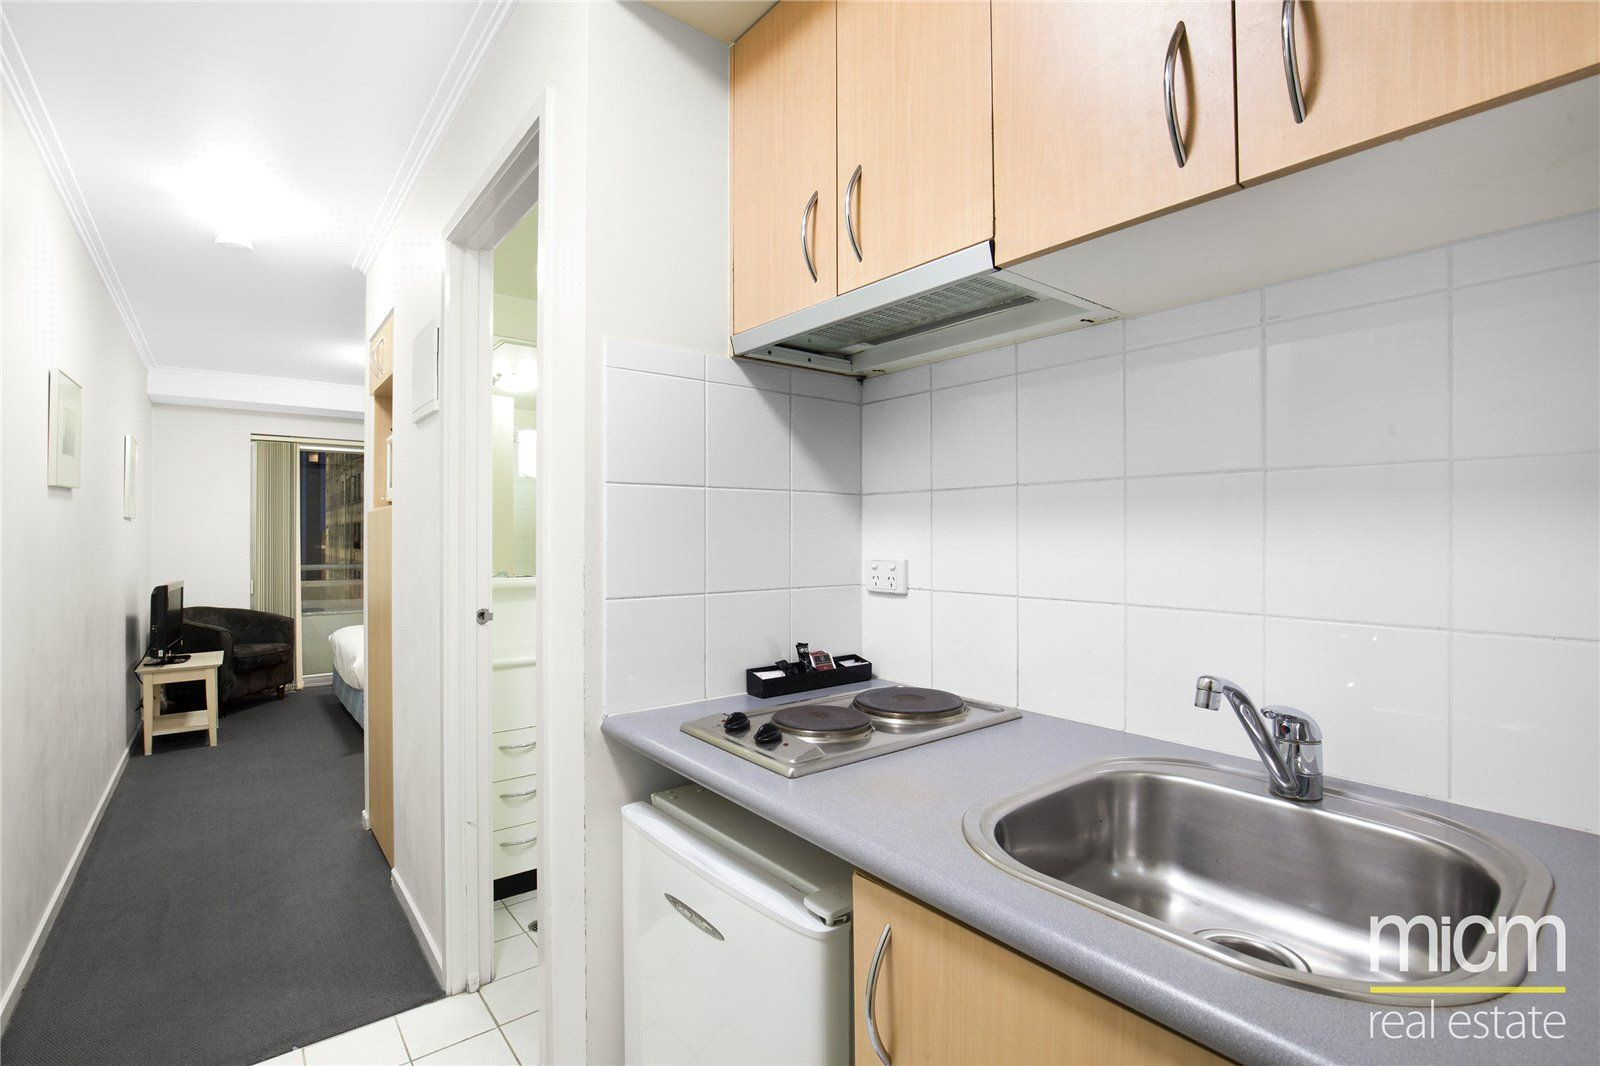 Stargate Apartments: Stunning Studio Metres from Queen Victoria Market!